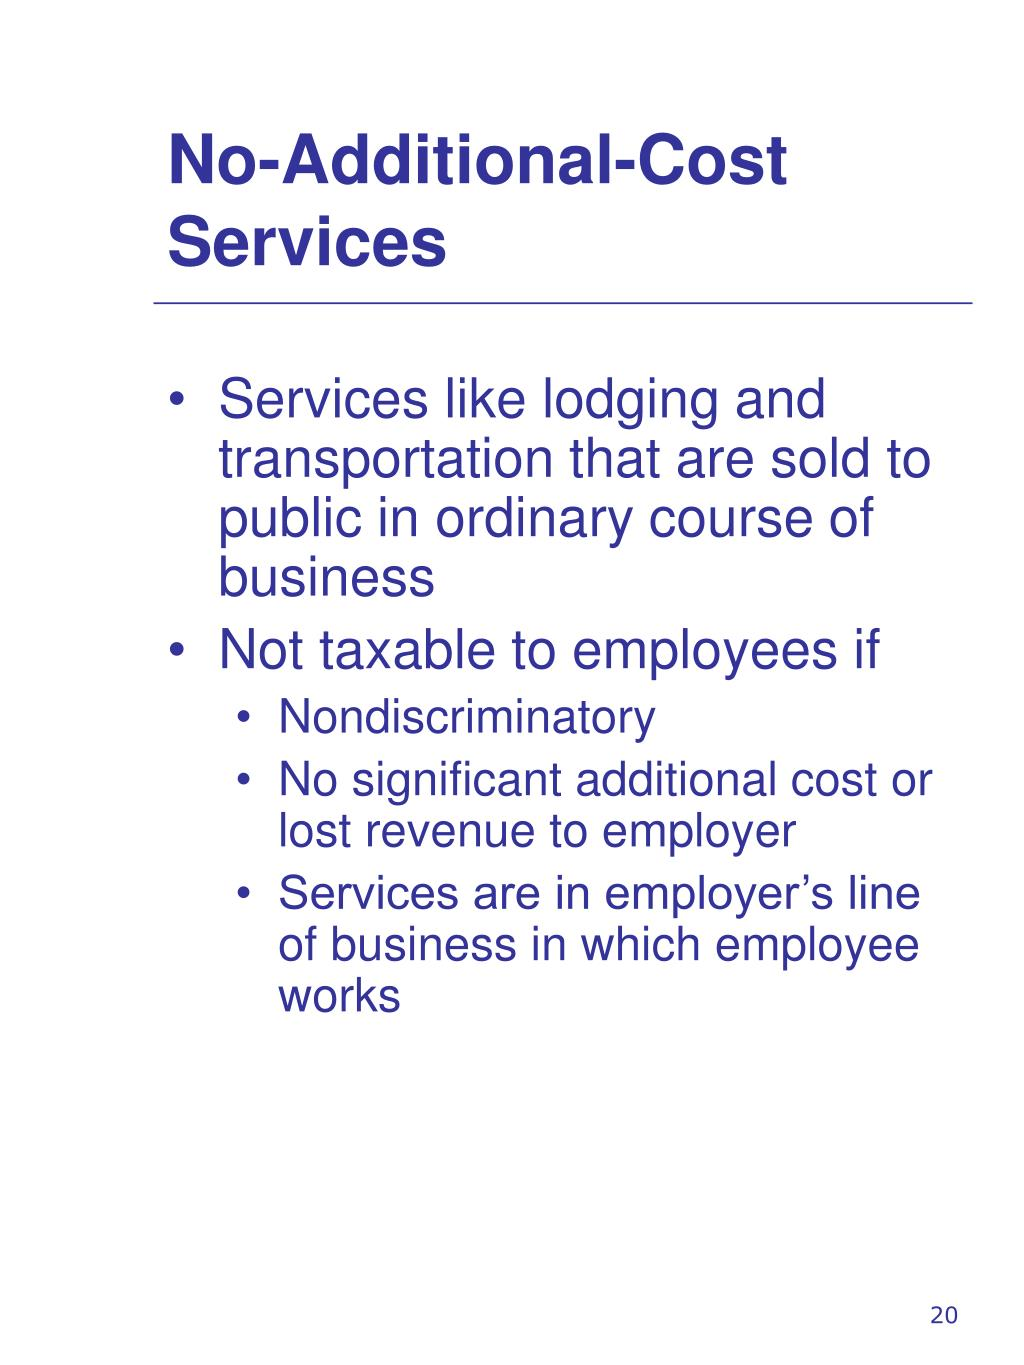 No-Additional-Cost Services